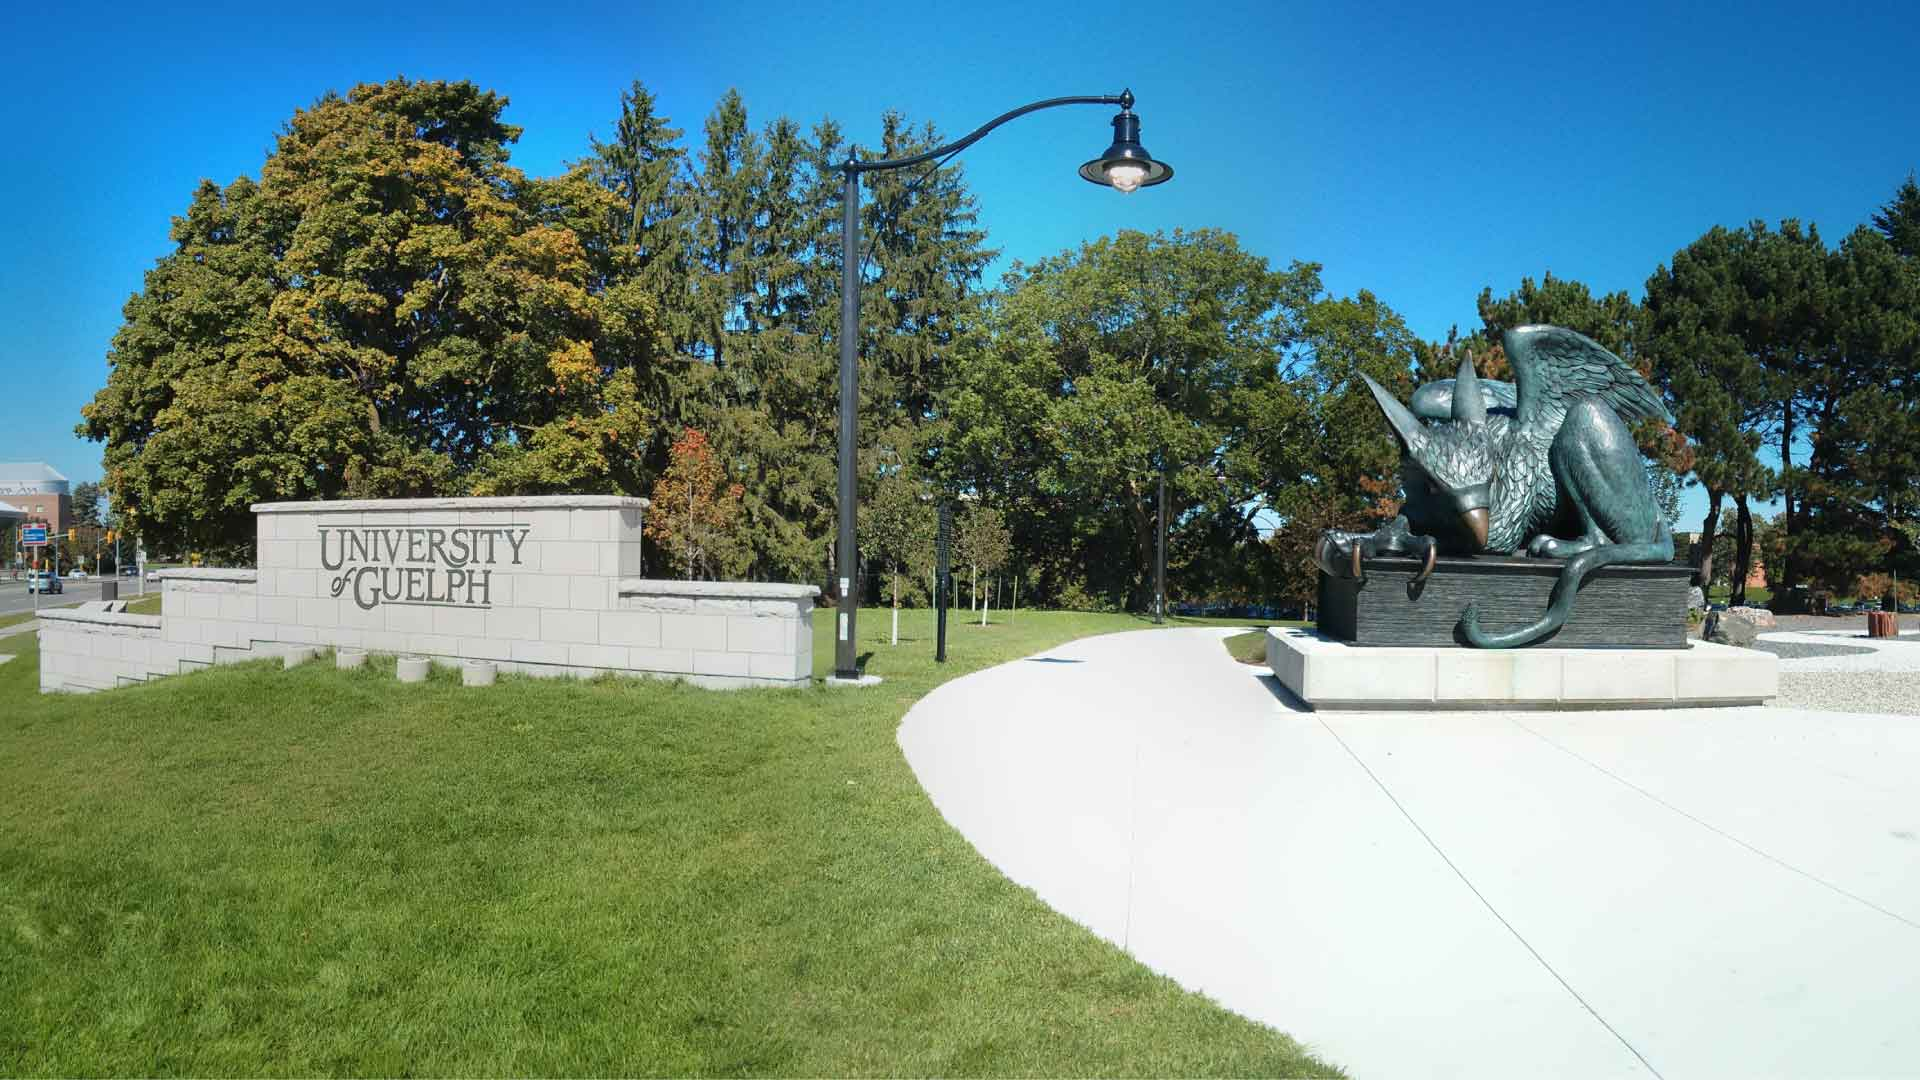 Gryphon statue and sign on University of Guelph campus